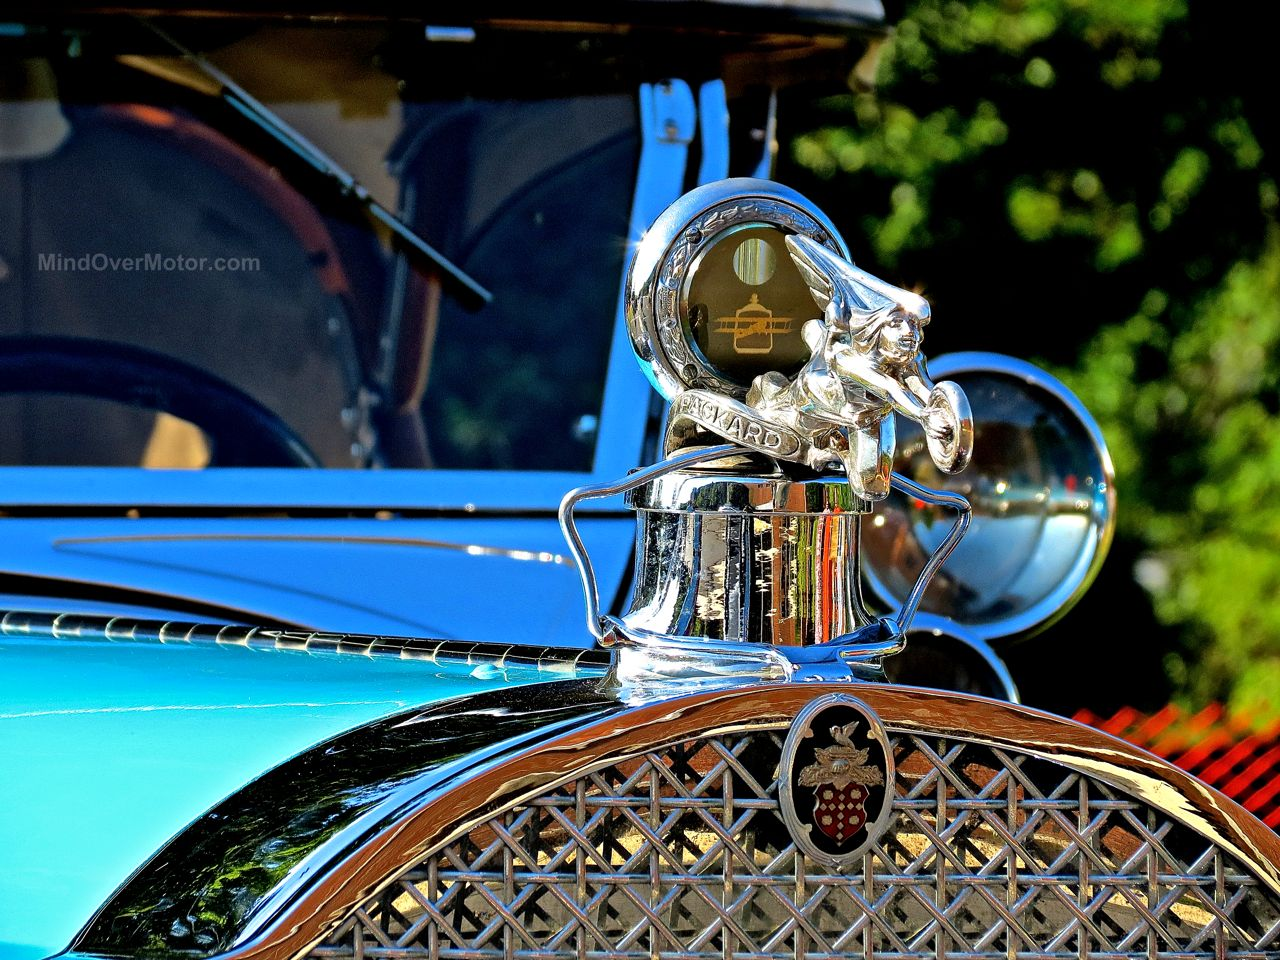 New Hope Packard Hood Ornament